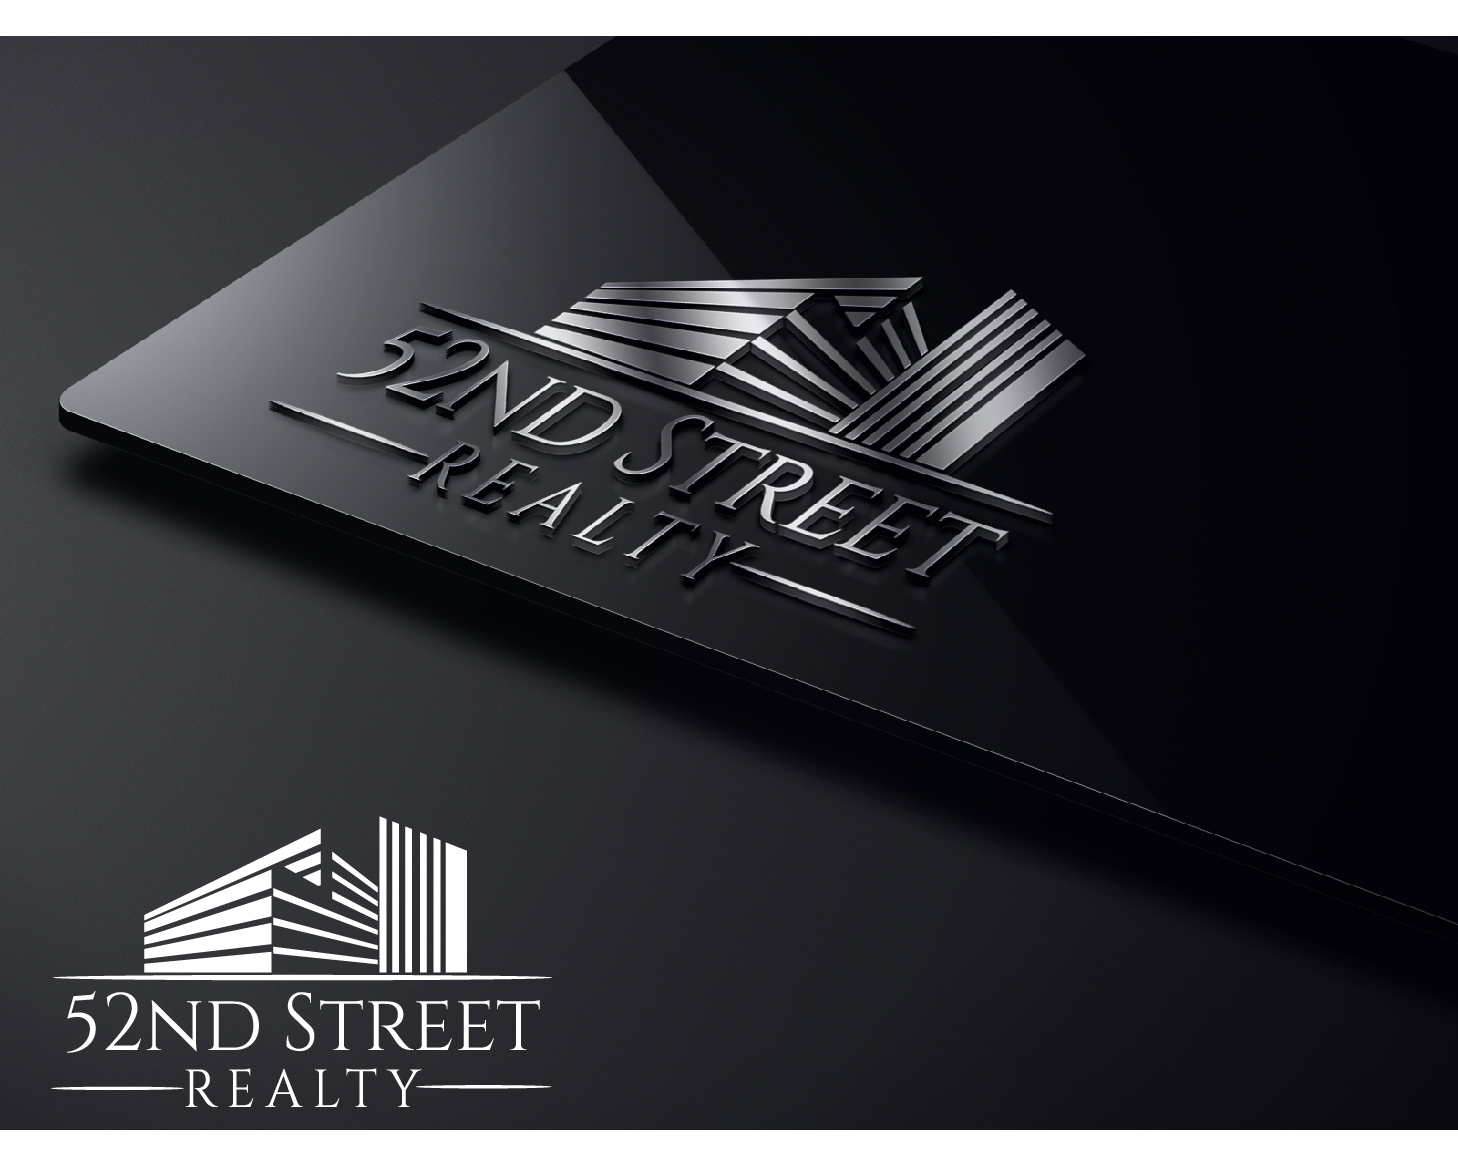 Logo Design by VENTSISLAV KOVACHEV - Entry No. 54 in the Logo Design Contest 52nd Street Realty Logo Design.